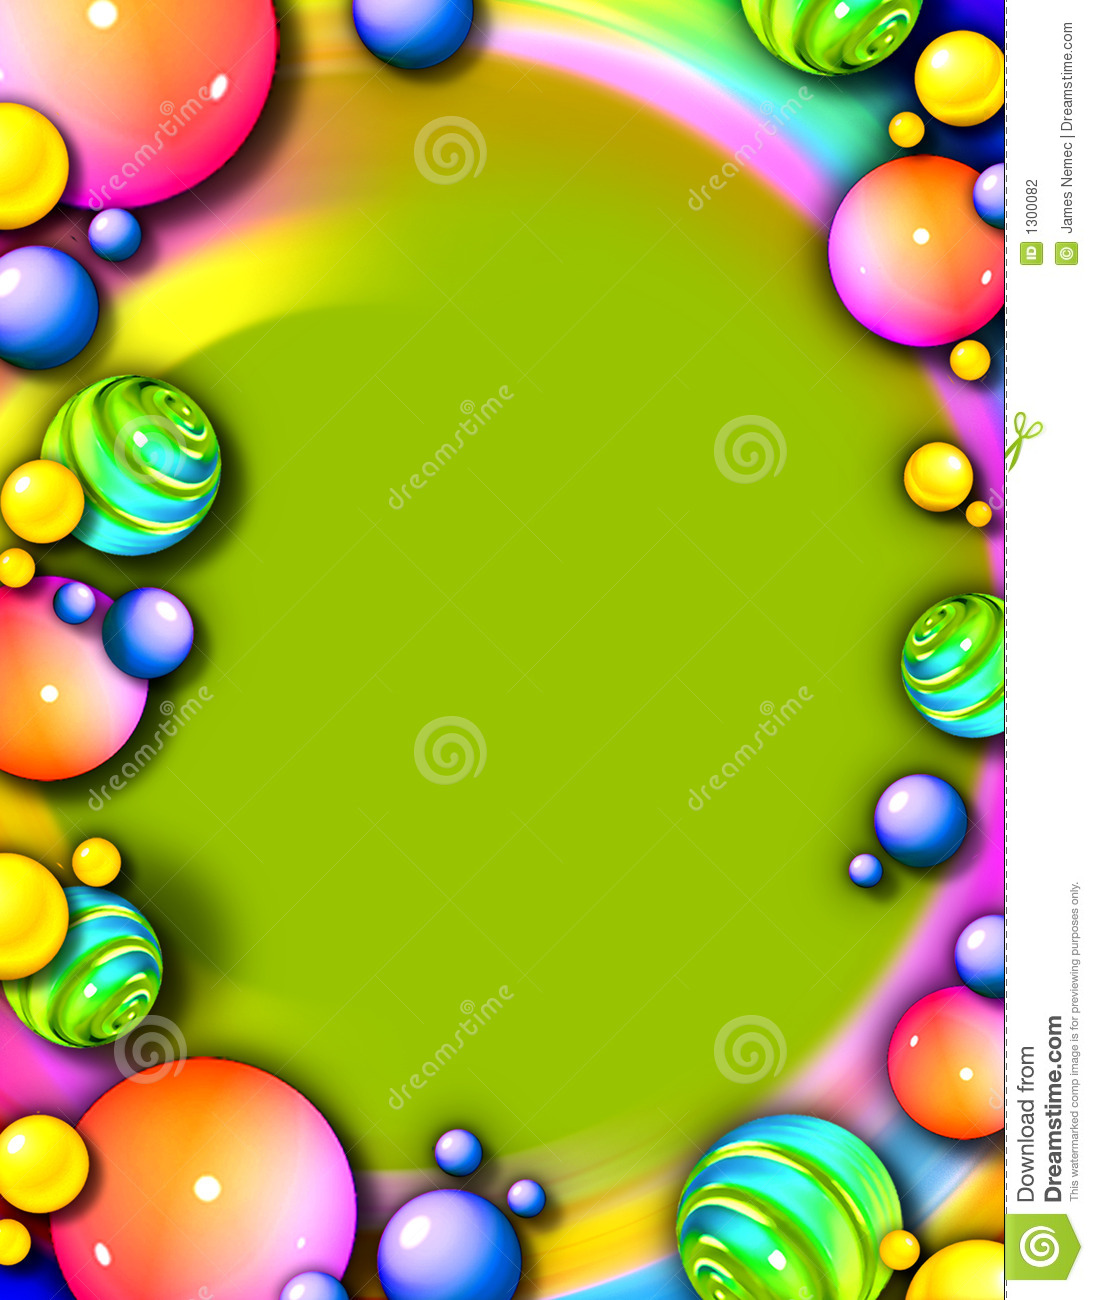 Whimsical Party Frame & Background Stock Photography ...